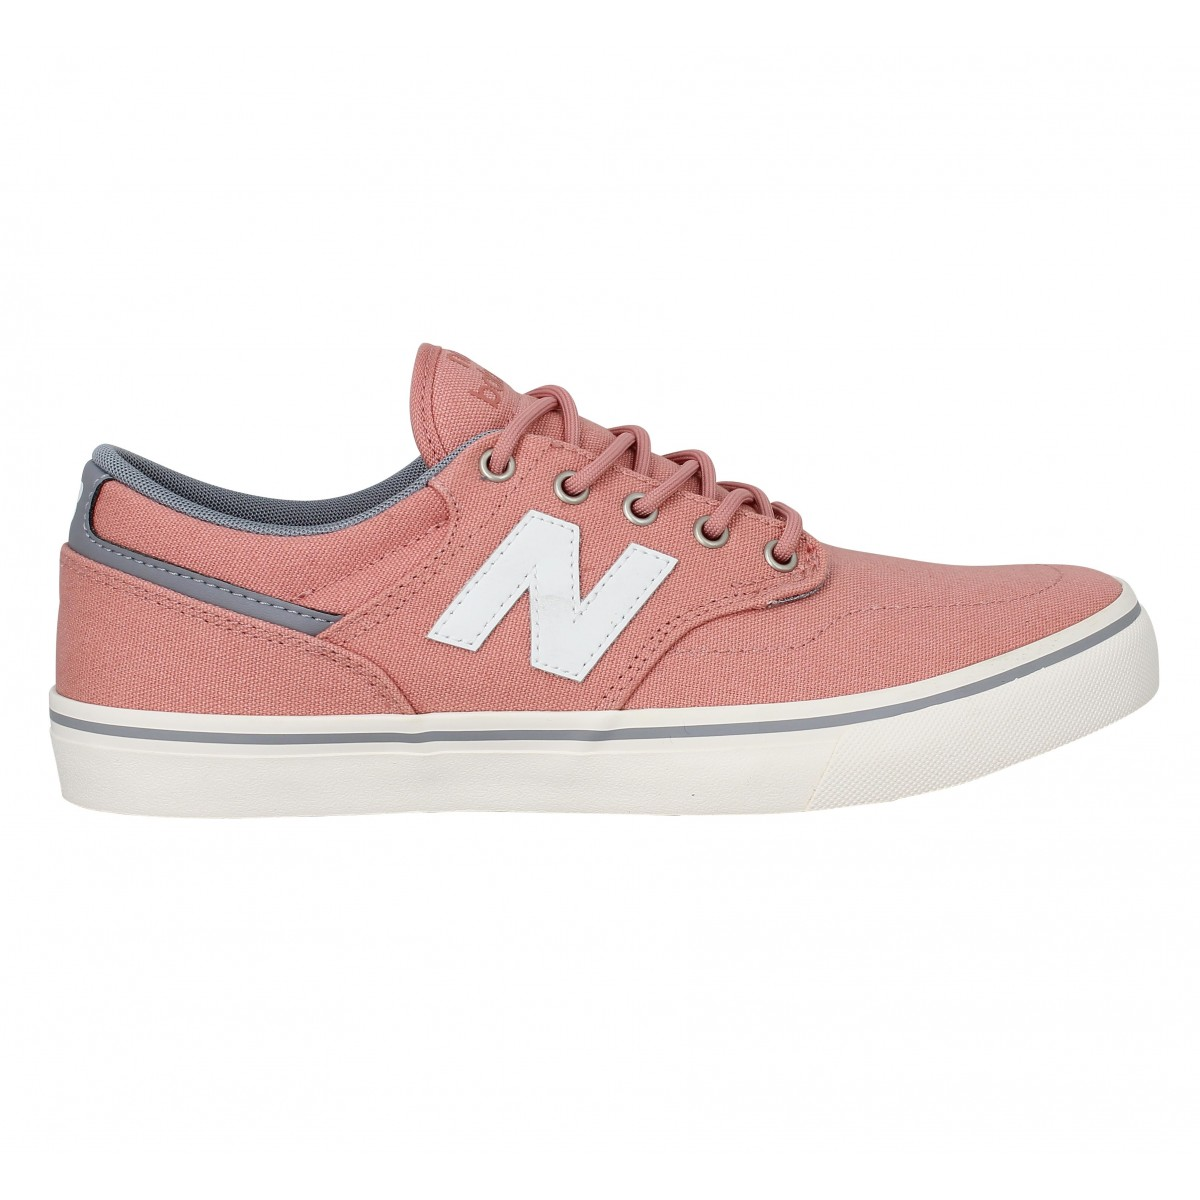 New Balance Chaussures 331 toile Homme Rose New Balance soldes C0OZRzMwor